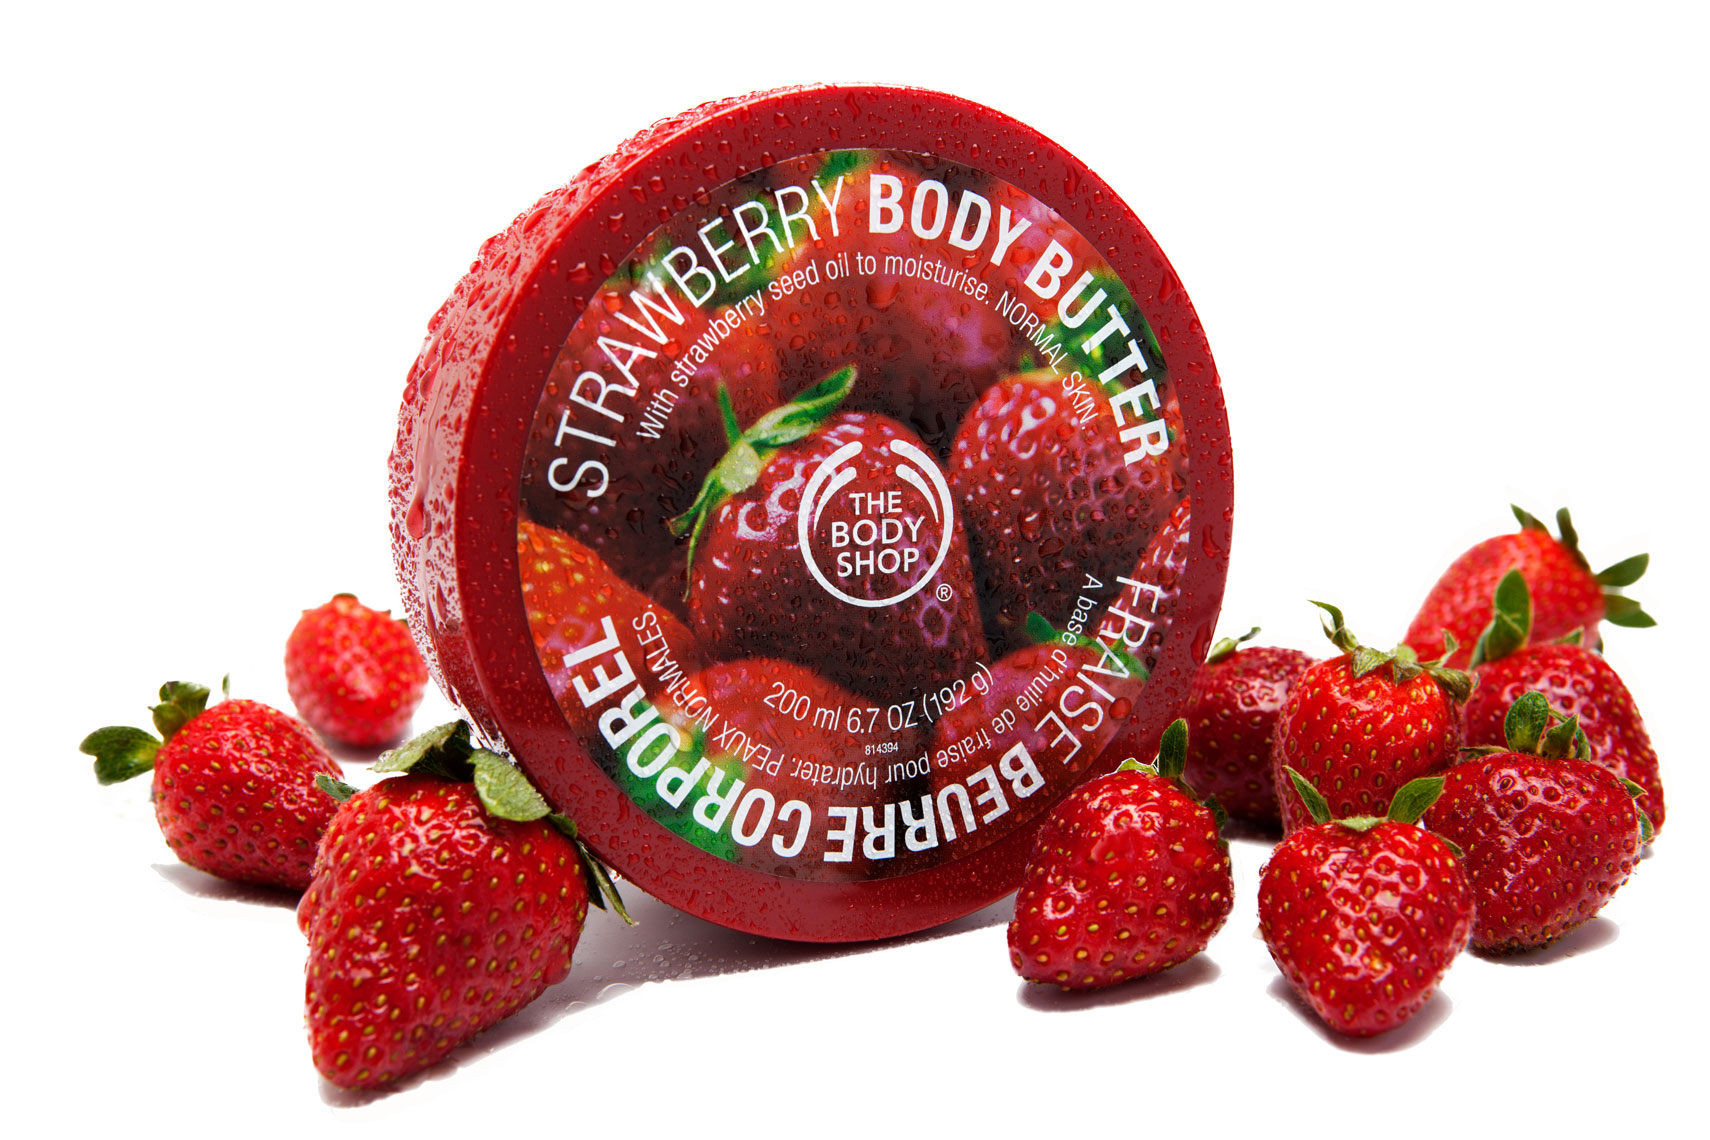 StrawberryBodyButterHero_21copy